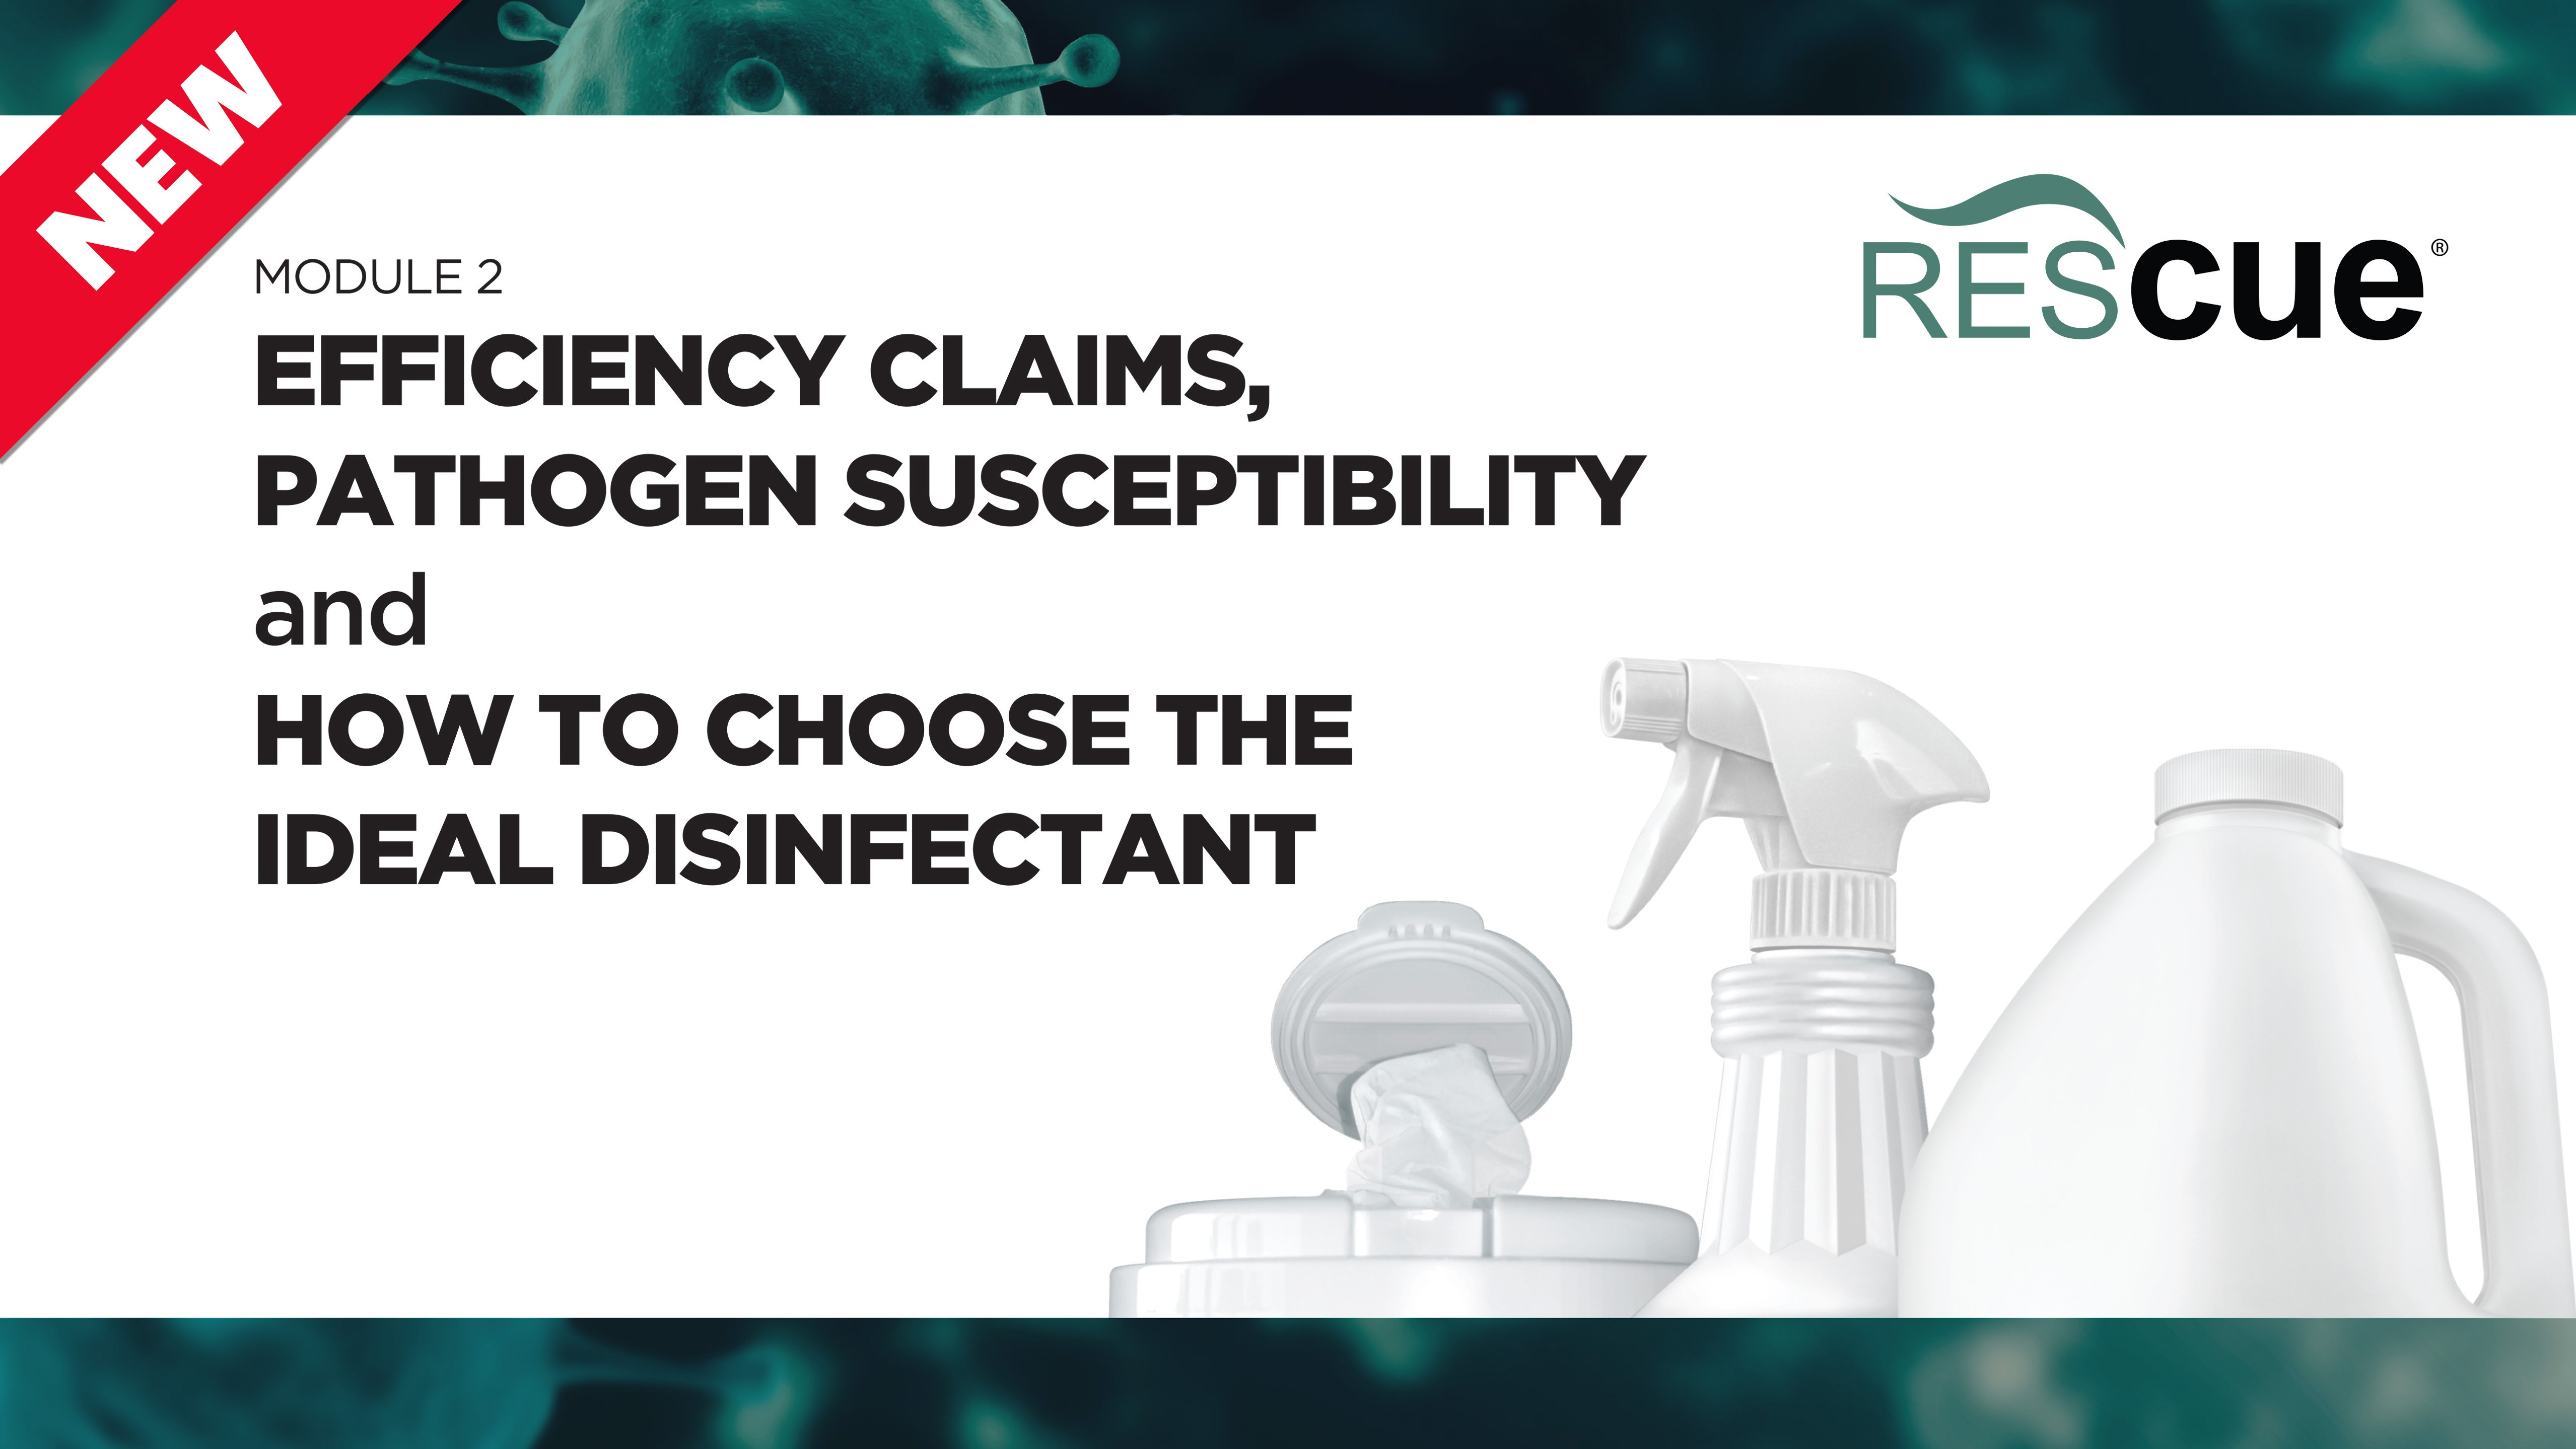 Thumbnail image preview of the Efficacy Claims, Pathogen Susceptibility & How to Choose the Ideal Disinfectant course